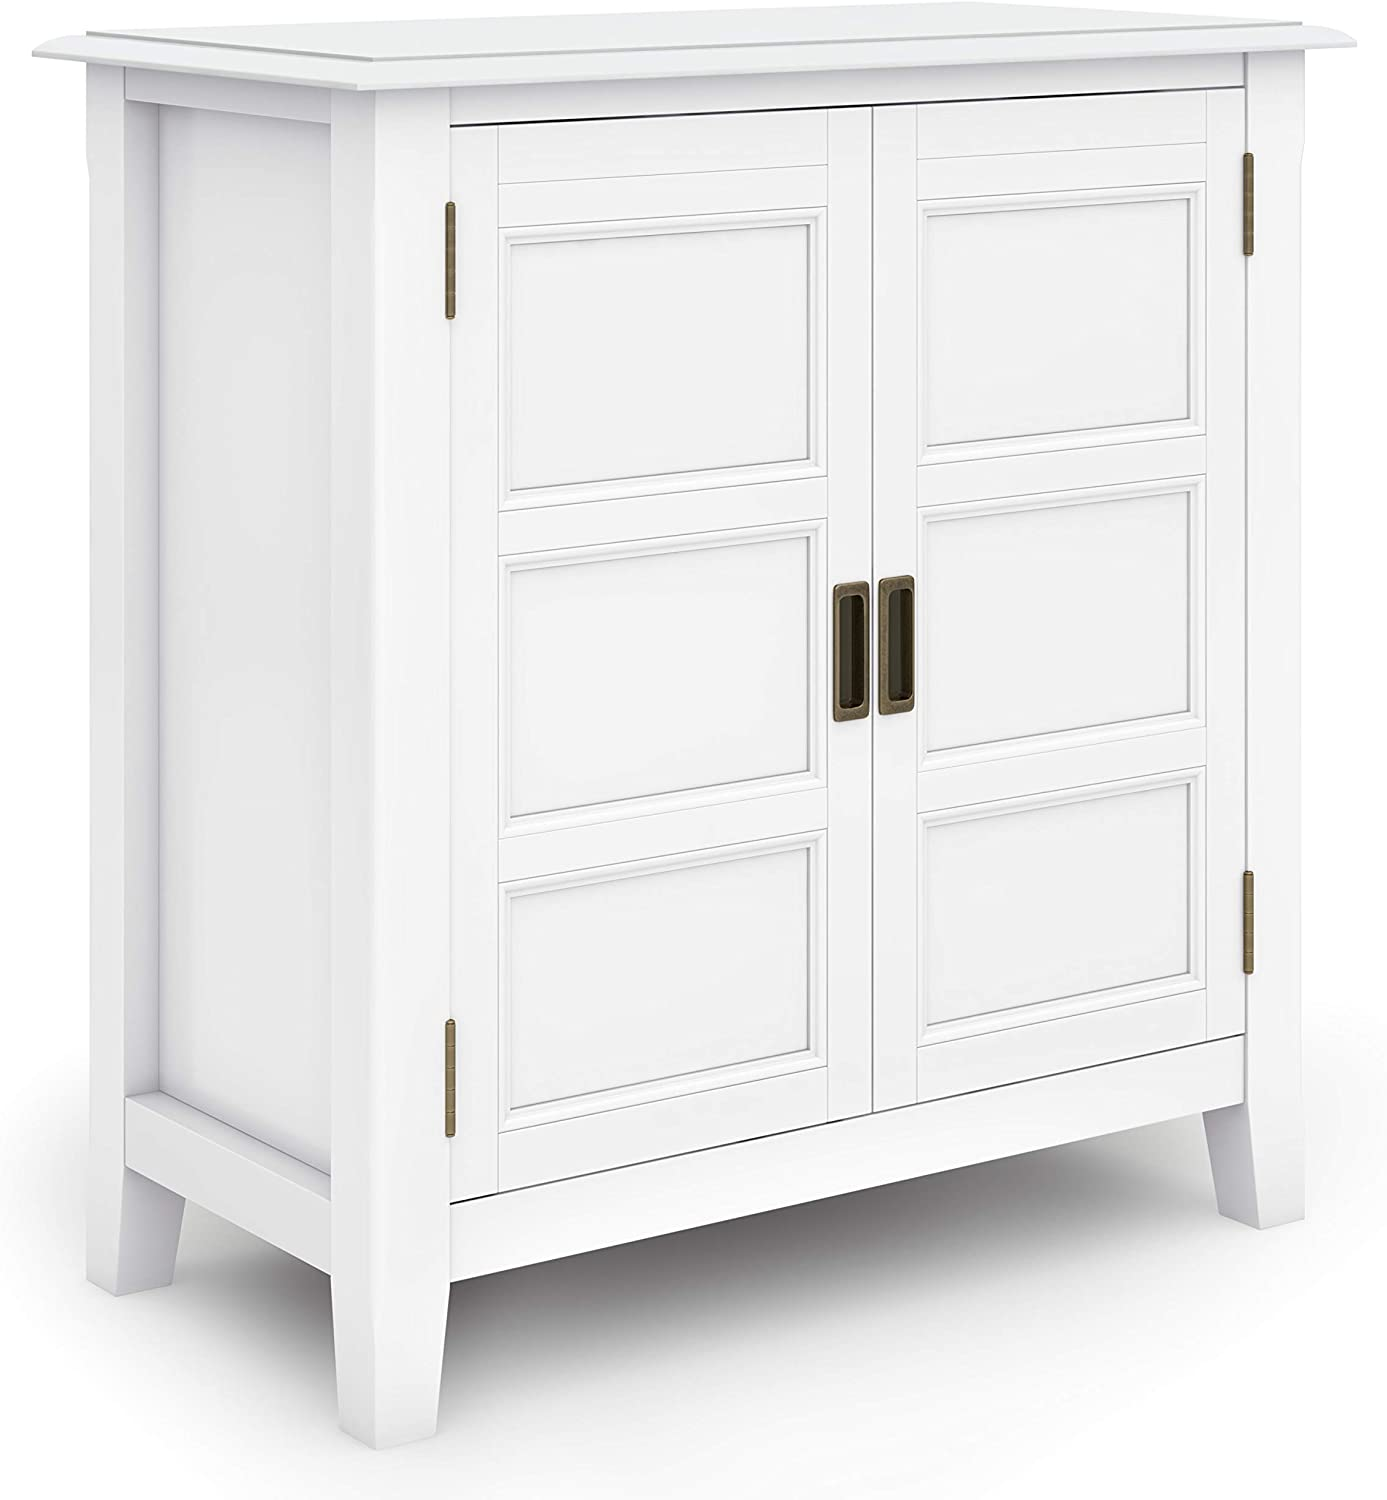 SIMPLIHOME Burlington SOLID WOOD 30 inch Wide Traditional Low Storage Cabinet in White, with 2 Doors, 2 Adjustable Shelves